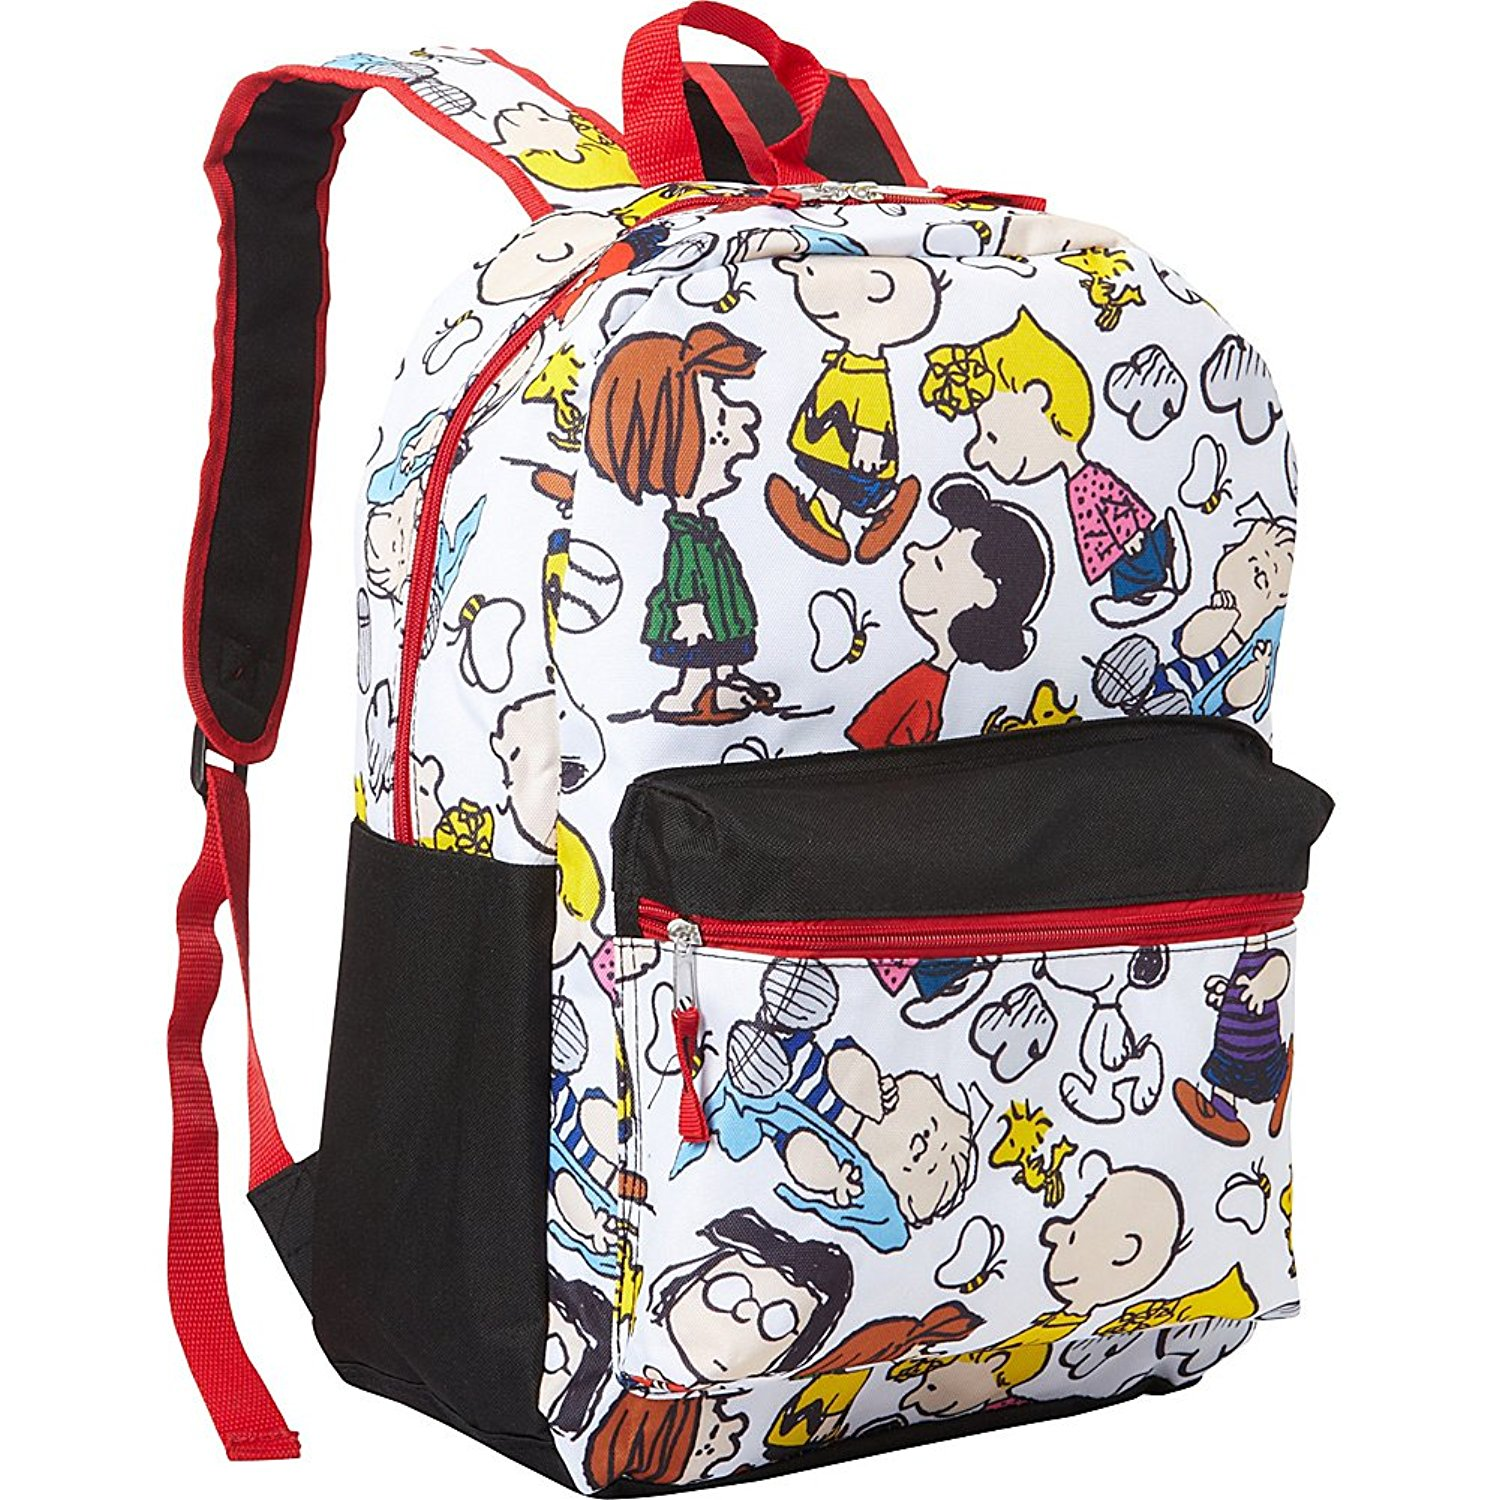 e6325d88a9 Get Quotations · Peanuts Snoopy Snoopy Backpack (White)